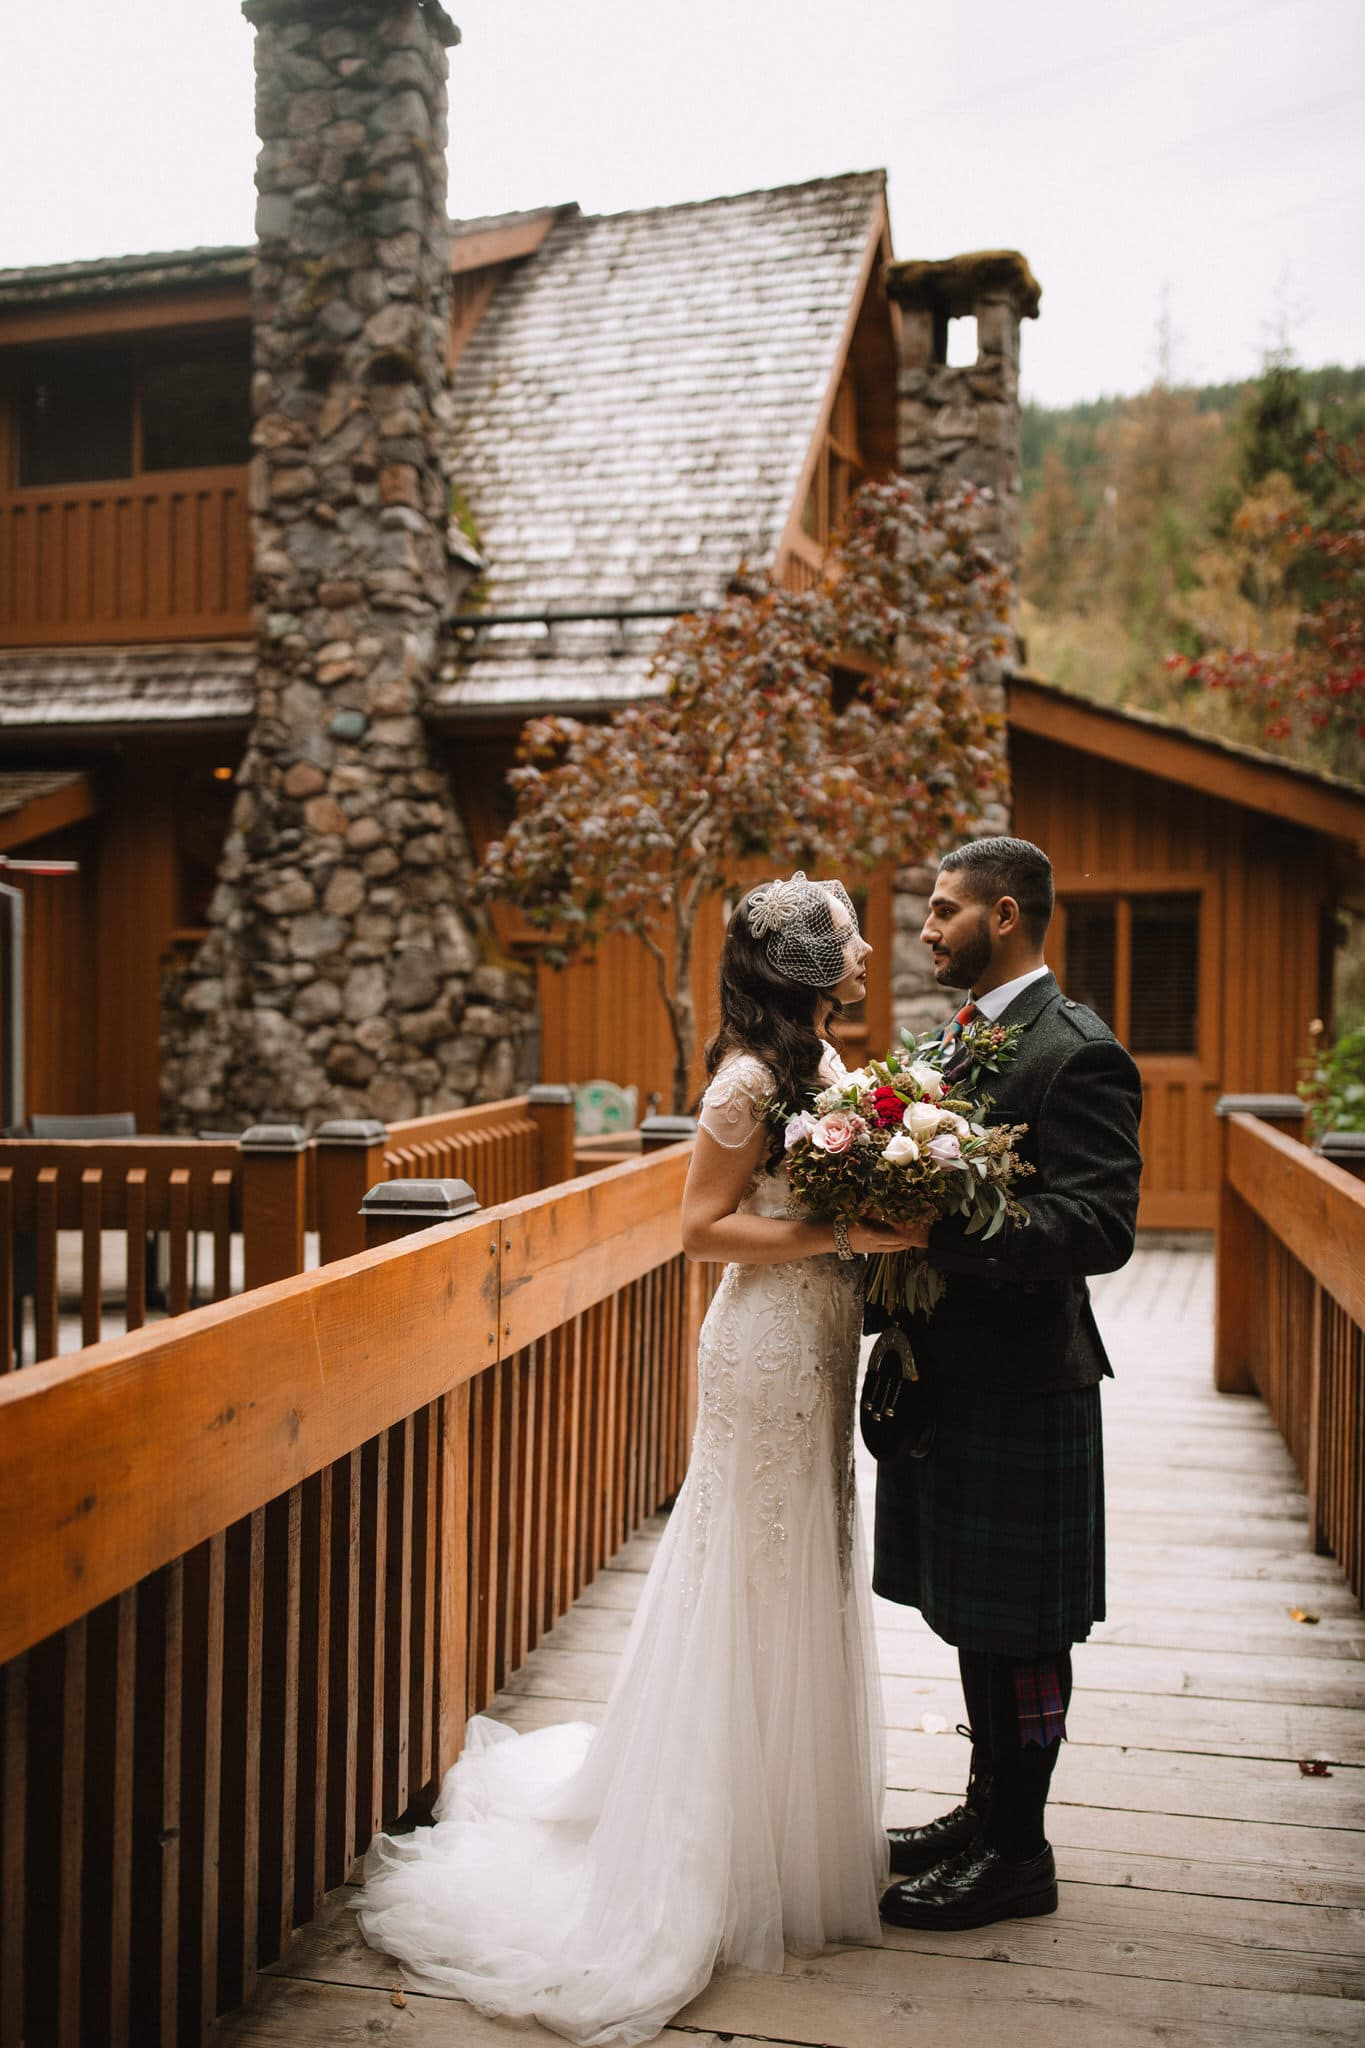 Bride and groom at The Brew Creek Centre in Whistler. Destination wedding photographer Brent Calis.